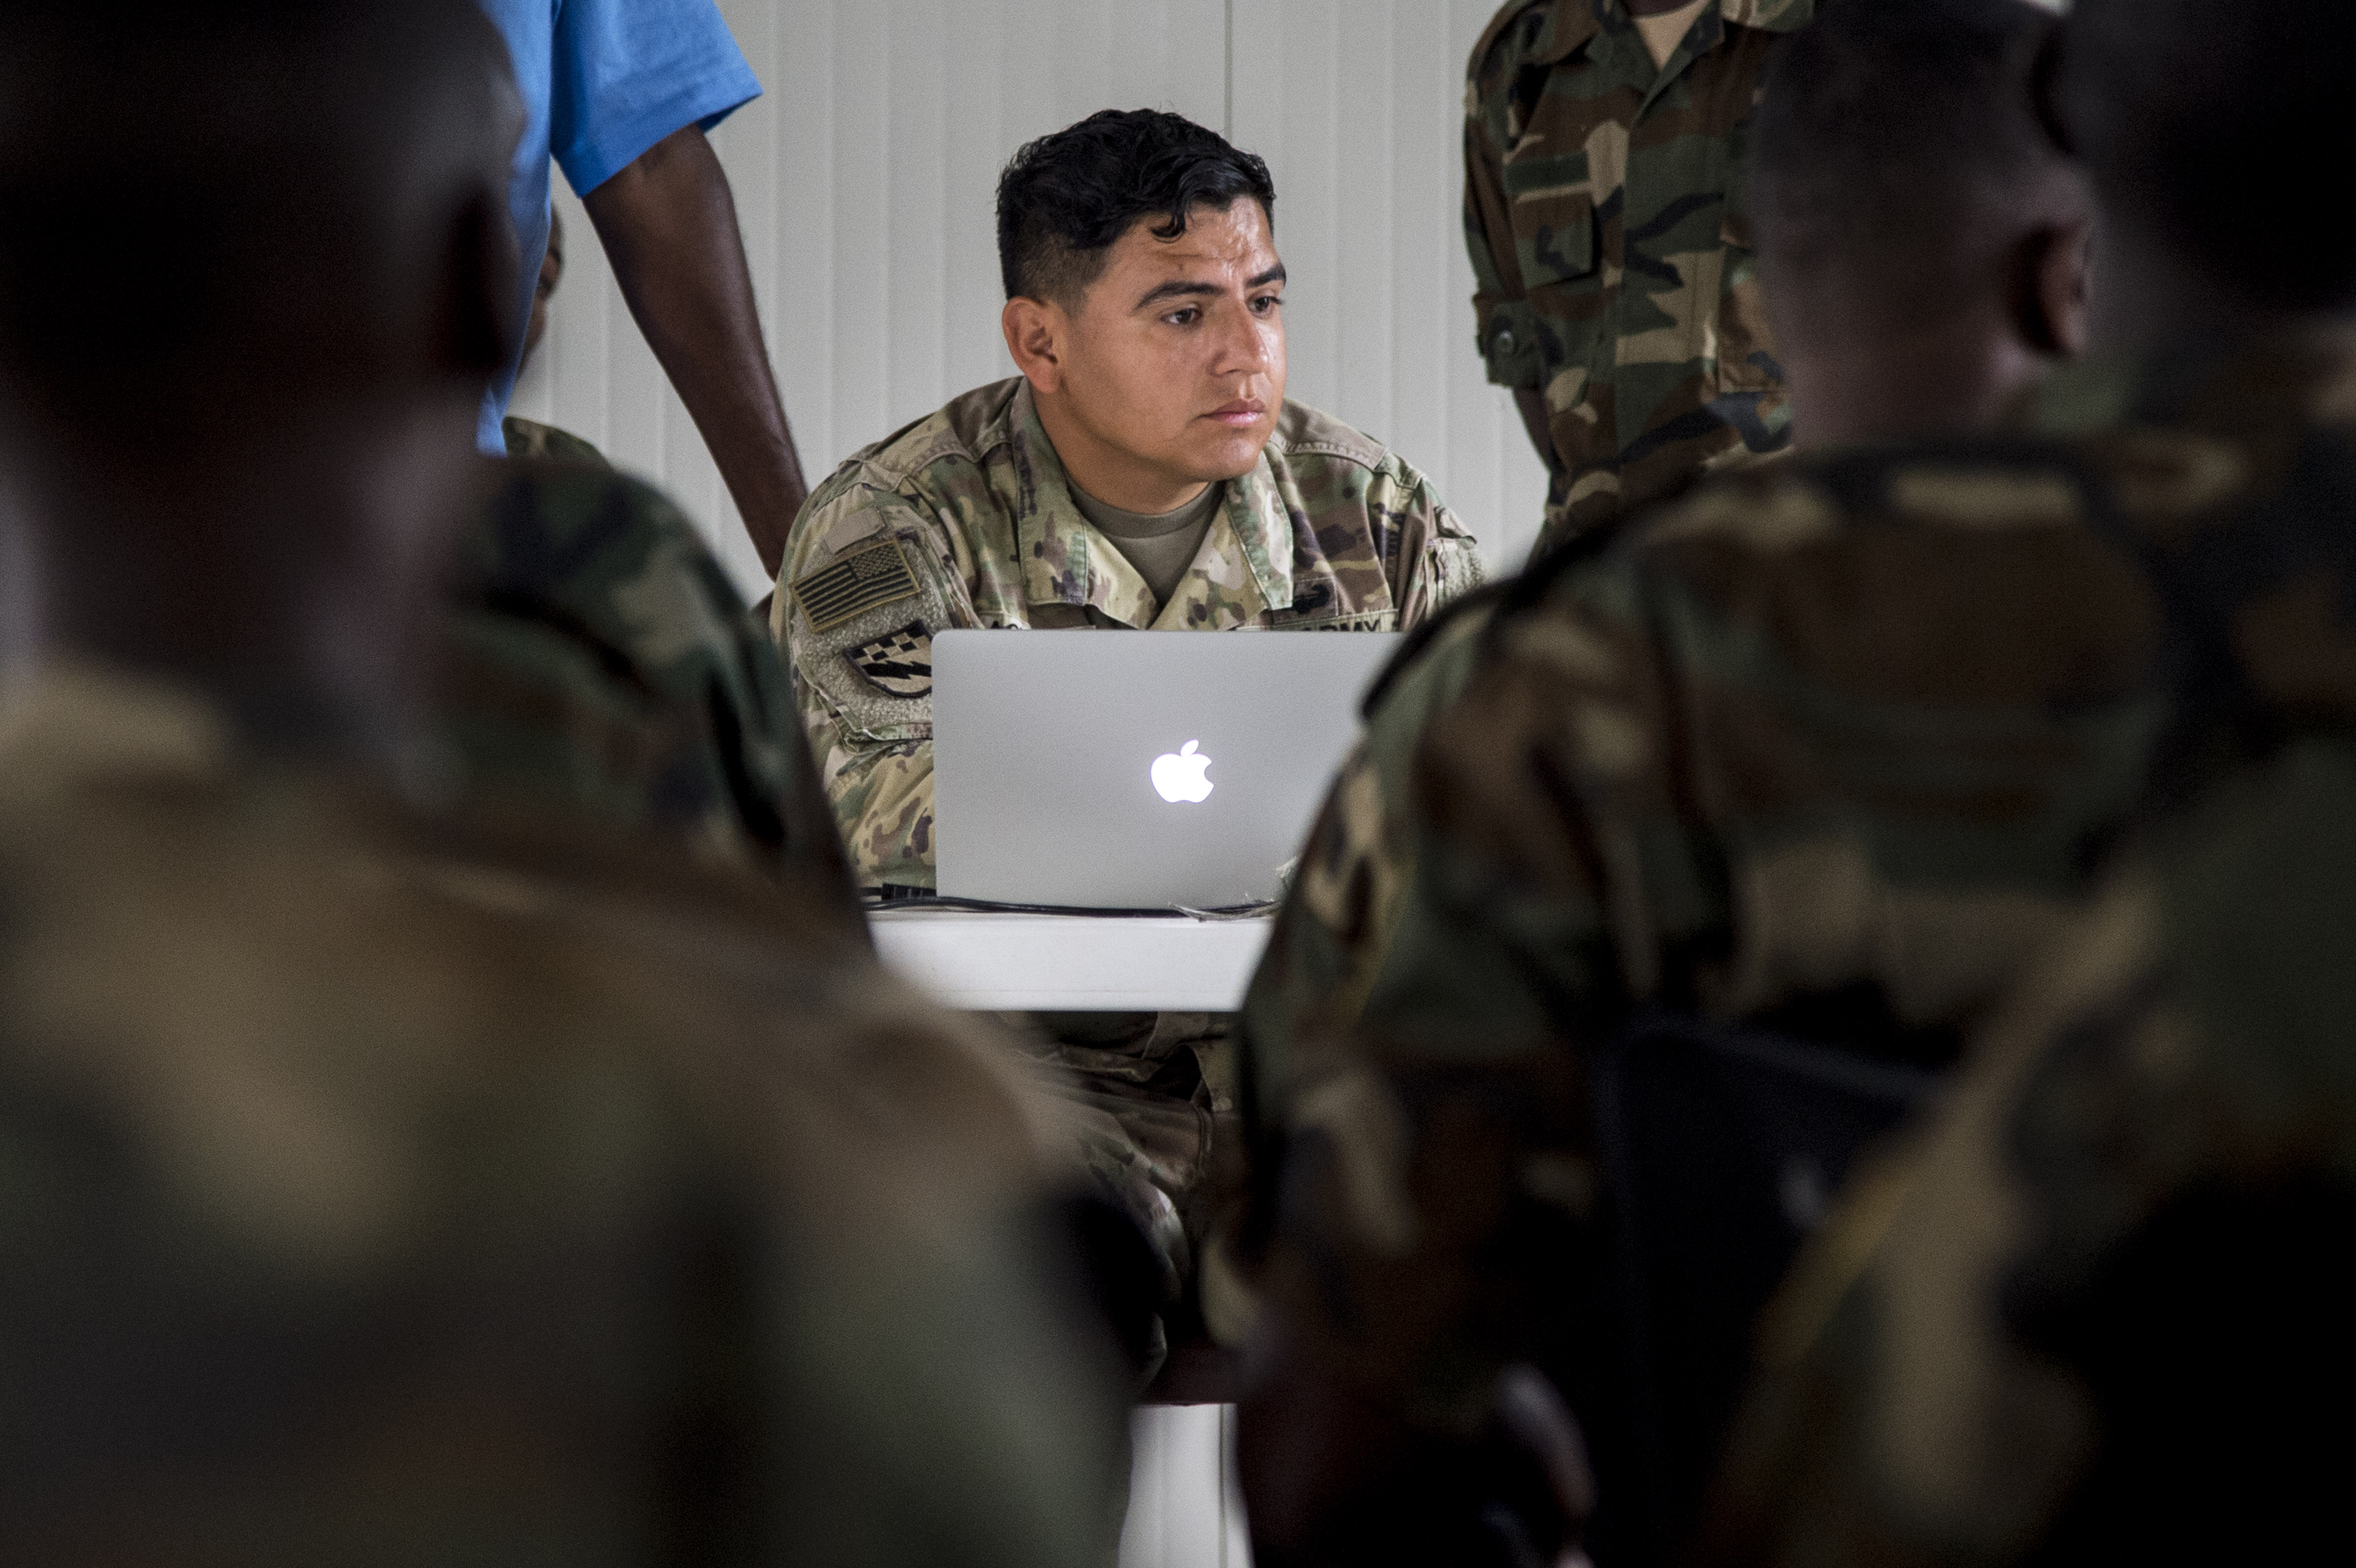 U.S. Army Sgt. Anthony Aguirre, a mechanic with the 101st Airborne Division, 426th Brigade Support Battalion, 1st Brigade Combat Team, teaches a logistics course to Somali National Army soldiers May 22, 2017, in in Mogadishu, Somalia. The six-week logistics course focused on various aspects of moving personnel, equipment and supplies.